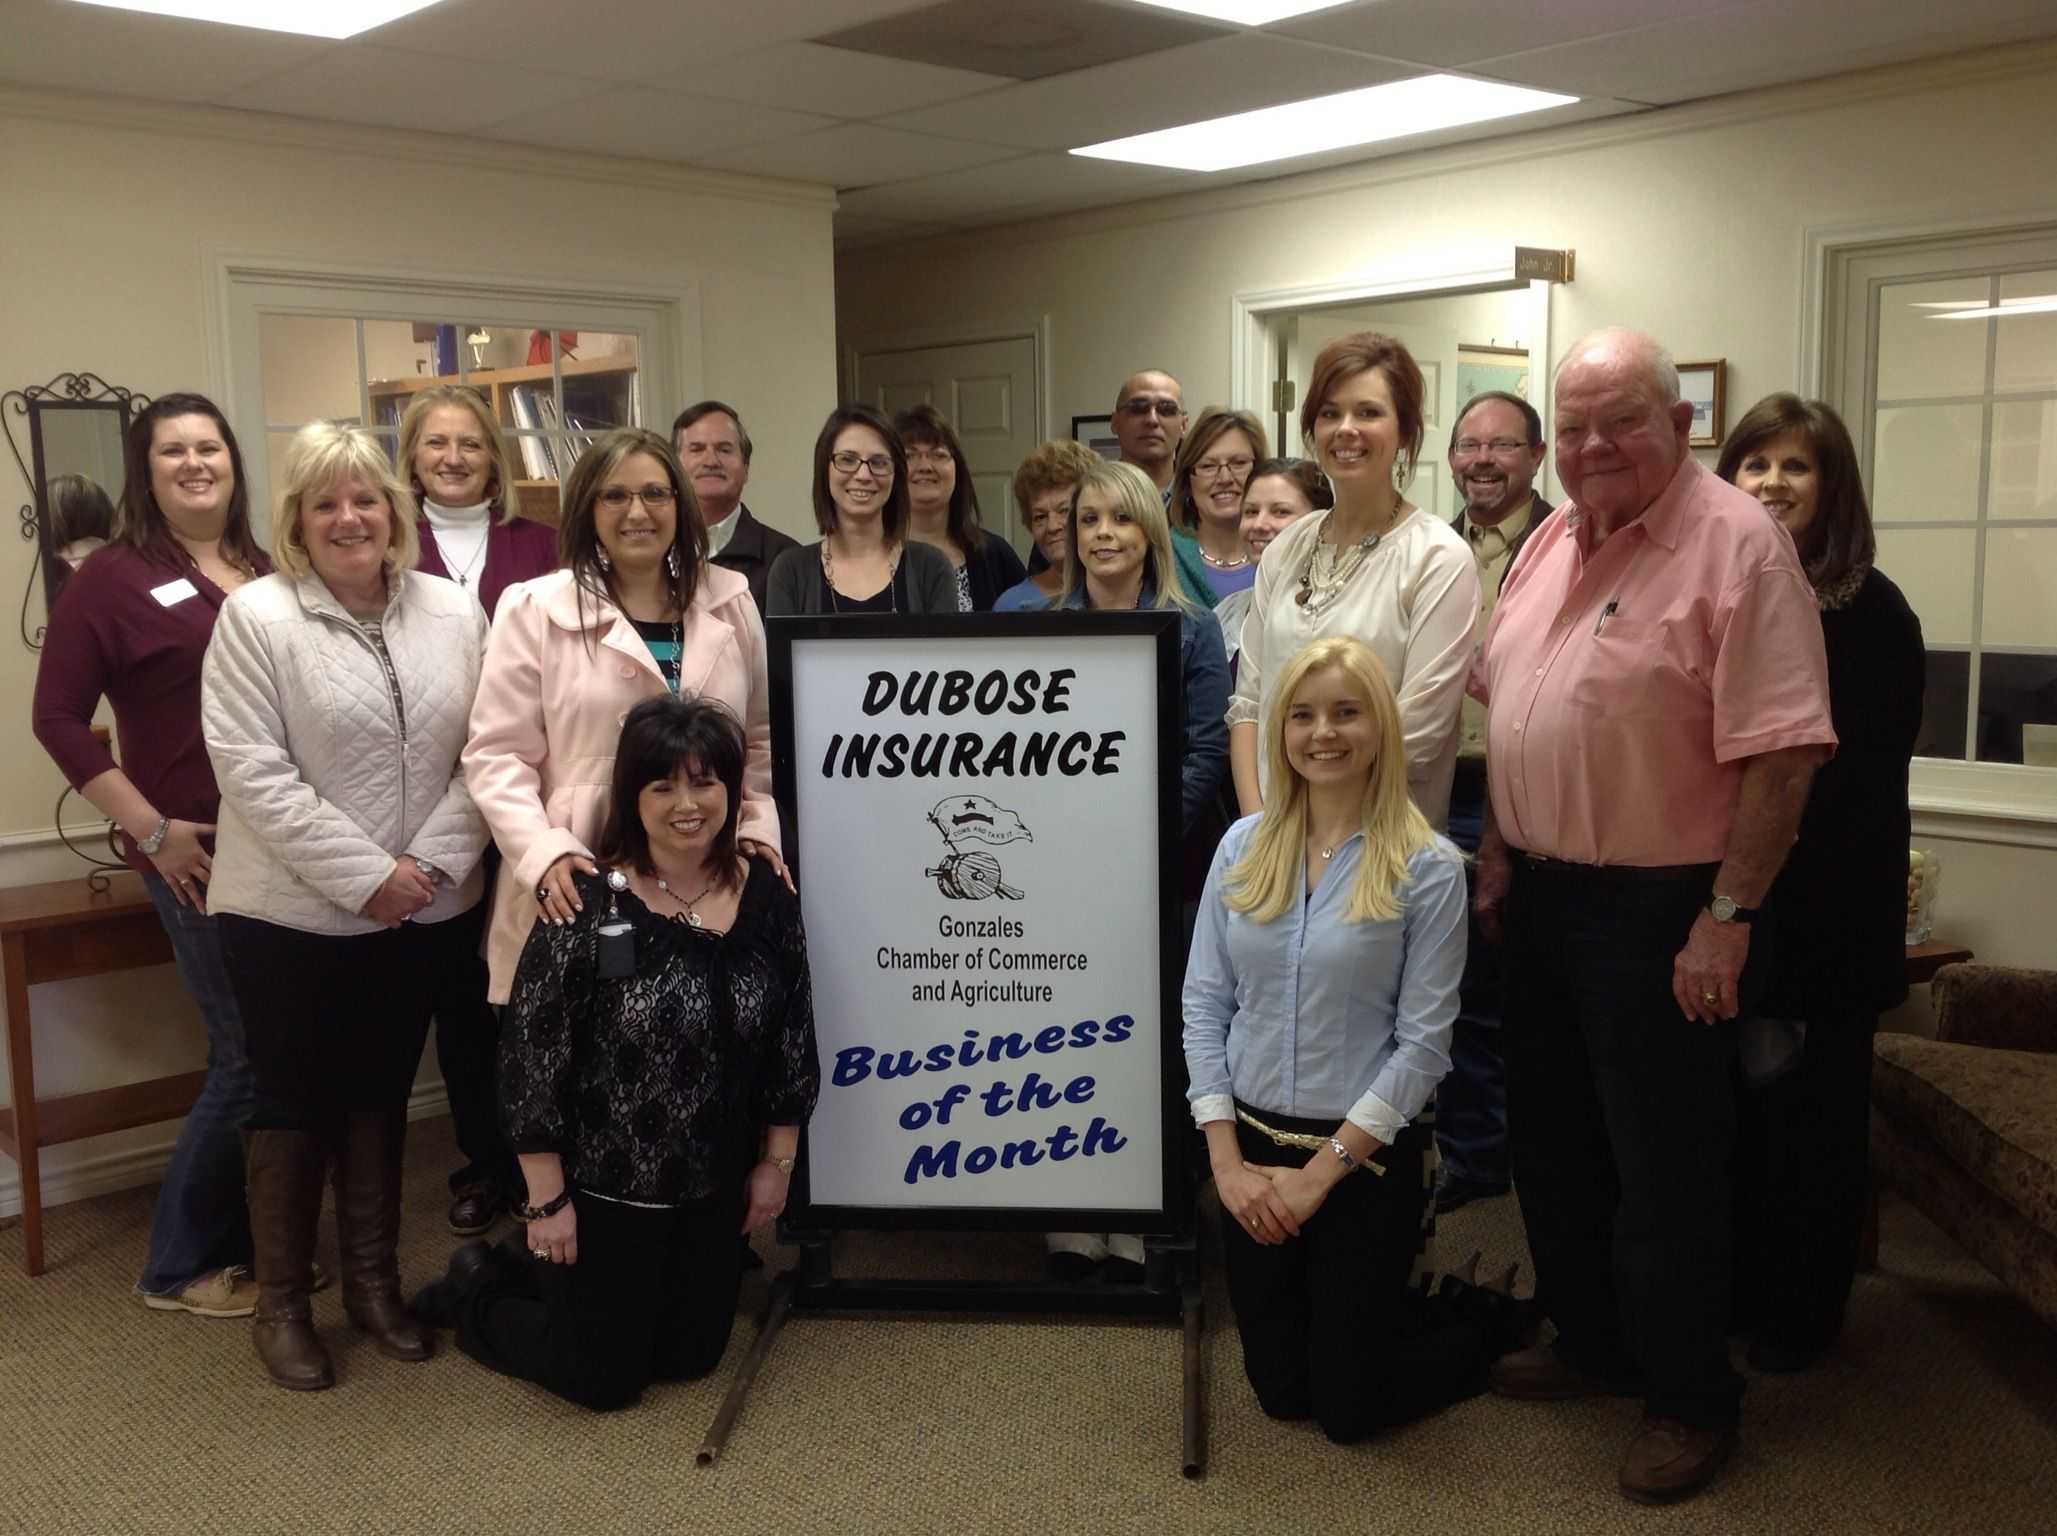 Congrats to dubose insurance agency for being our